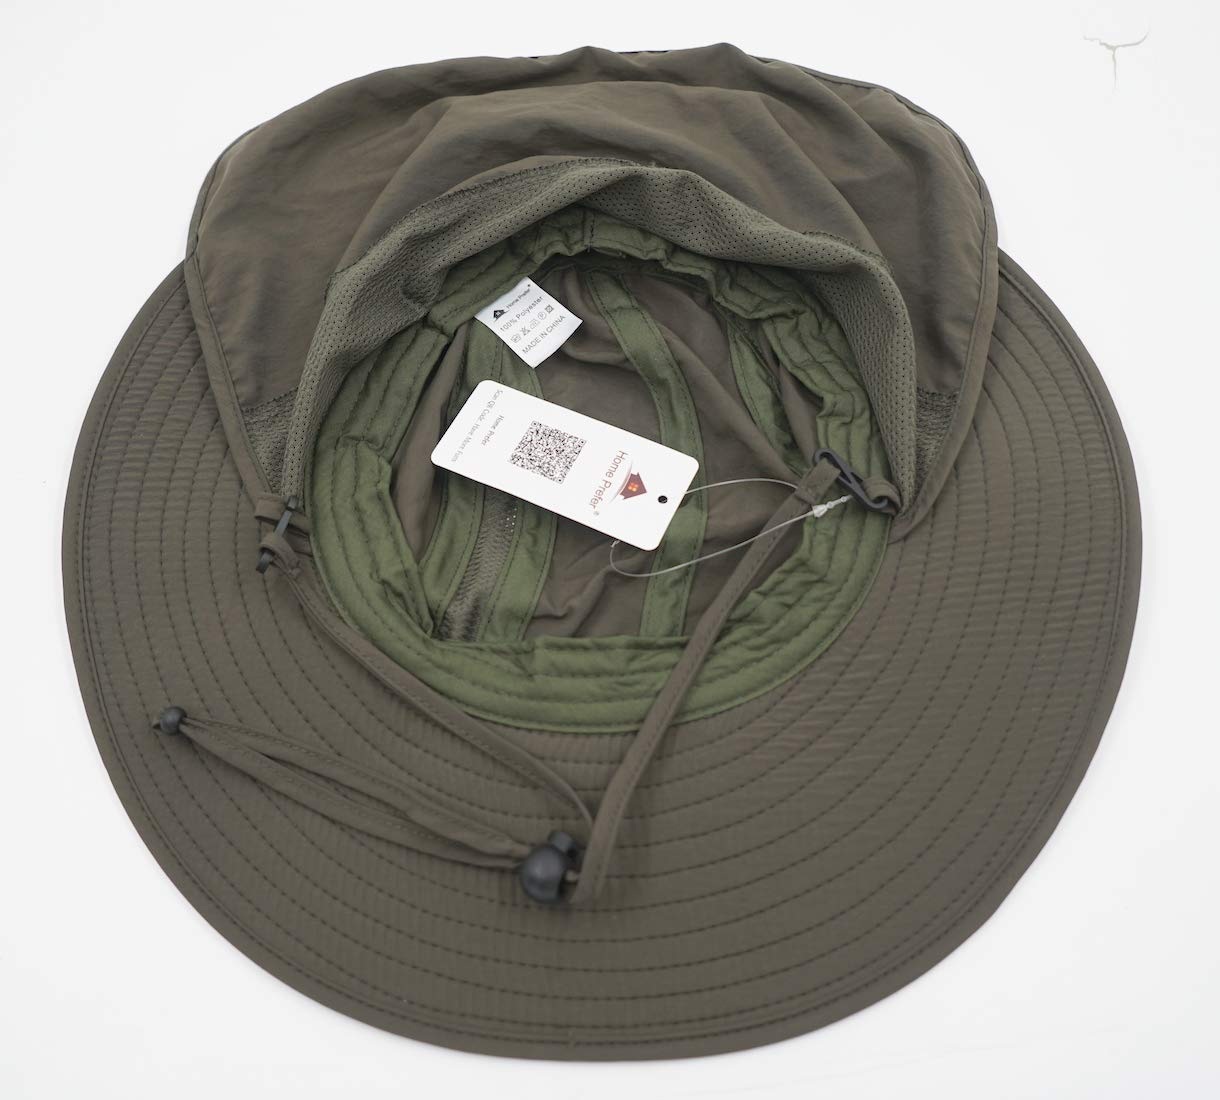 1e9c485cb1f98 Amazon.com   Home Prefer Mens UPF 50+ Sun Protection Cap Wide Brim Fishing  Hat with Neck Flap (Army Green)   Sports   Outdoors